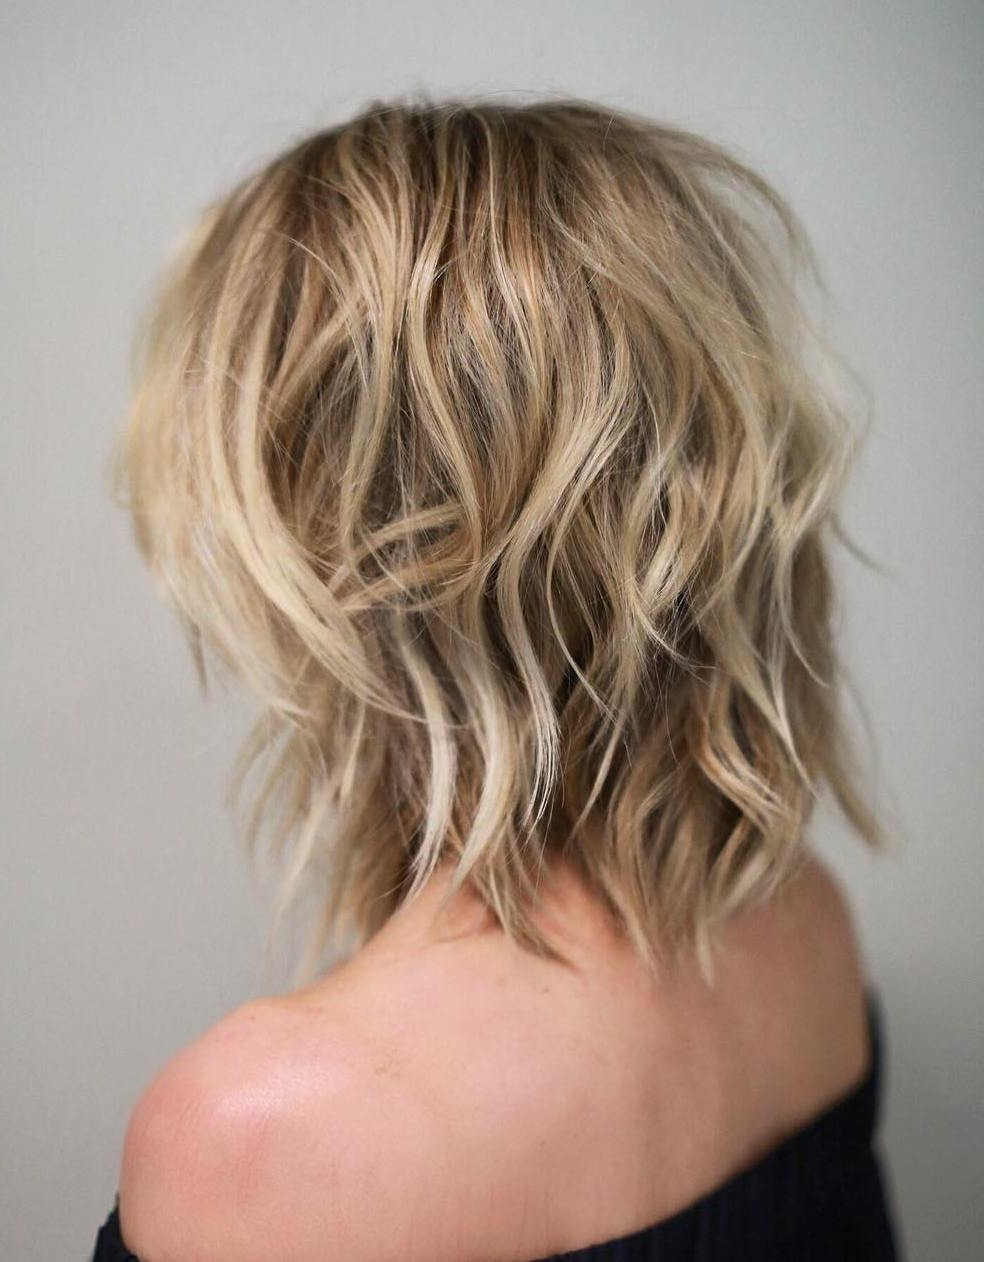 60 Best Variations Of A Medium Shag Haircut For Your Distinctive Style Throughout Most Popular Soft Feathery Texture Hairstyles For Long Hair (View 6 of 20)